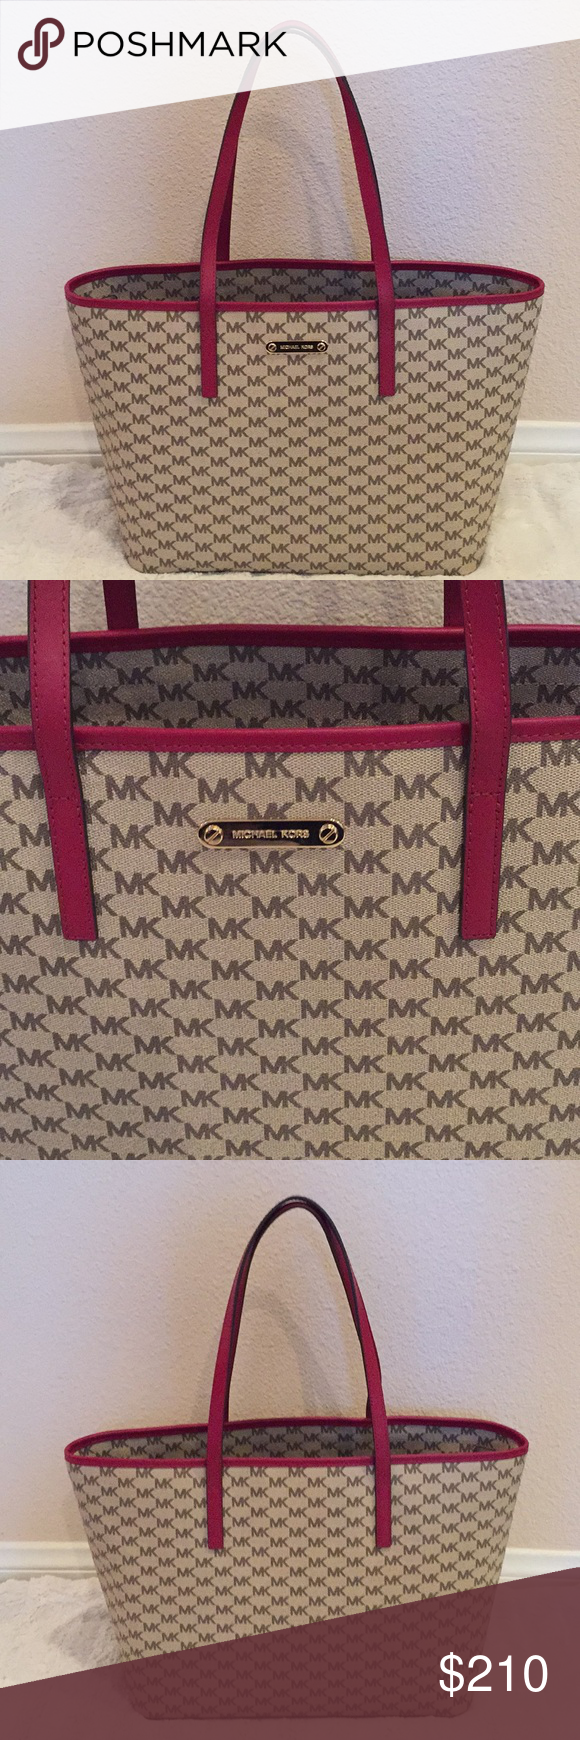 7ea542261252 NWT Michael Kors Emry Tote🌟 NWT Michael Kors Emry Tote, the color is  natural with cherry leather trim, this is a large bag it measures 18 inches  wide and ...